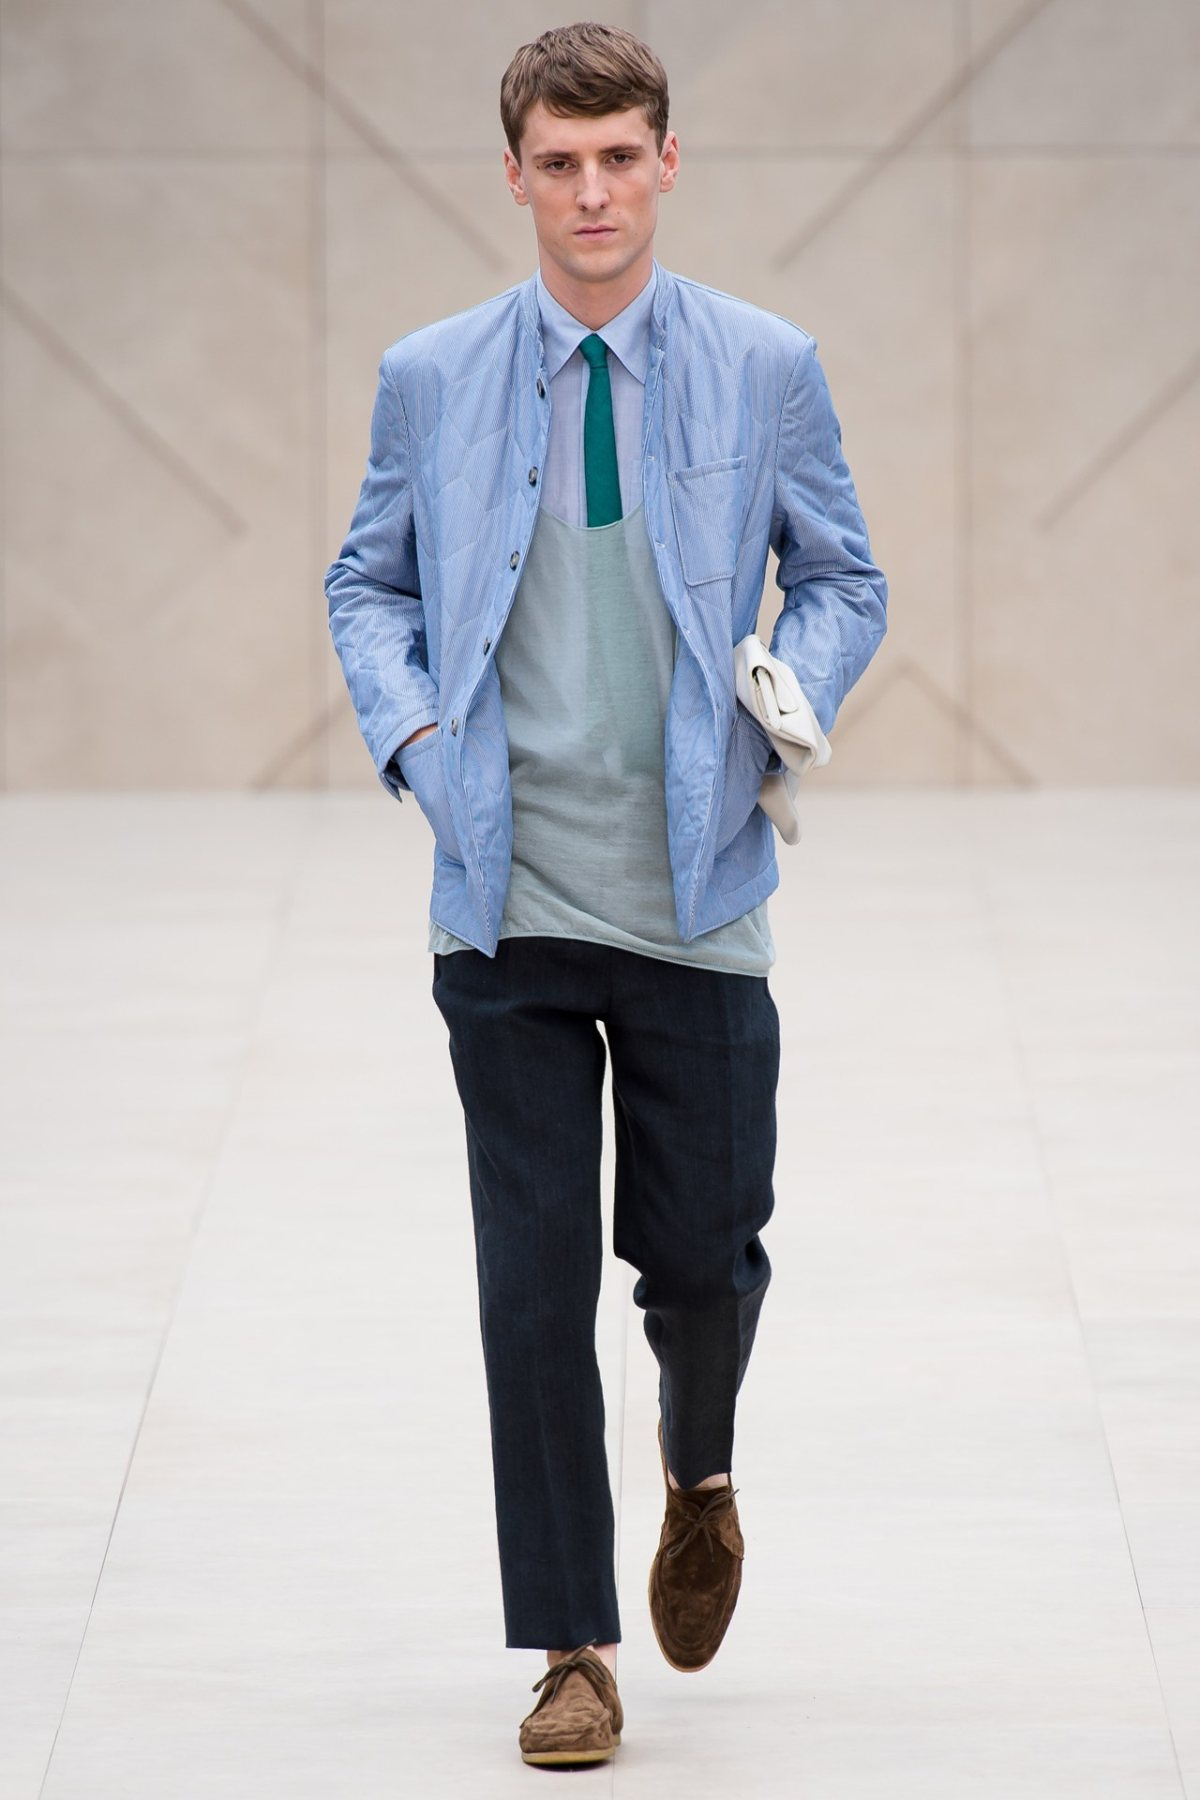 desfile-burberry-london-ss2014-19